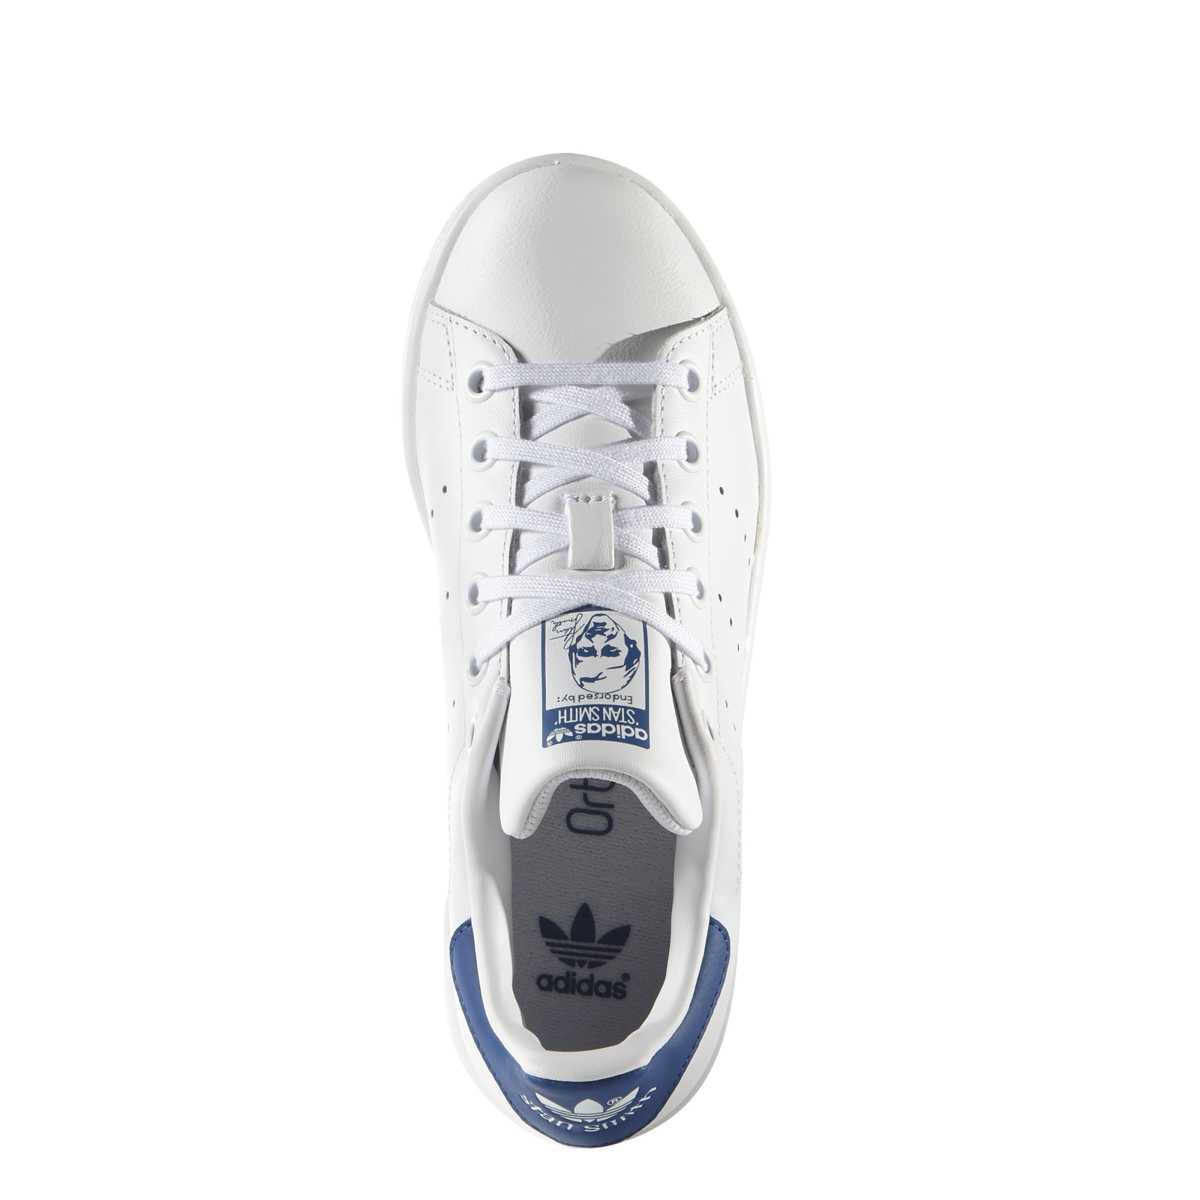 a308b1696f4 ... Adidas Stan Smith W Junior Shoes - s74778 ...